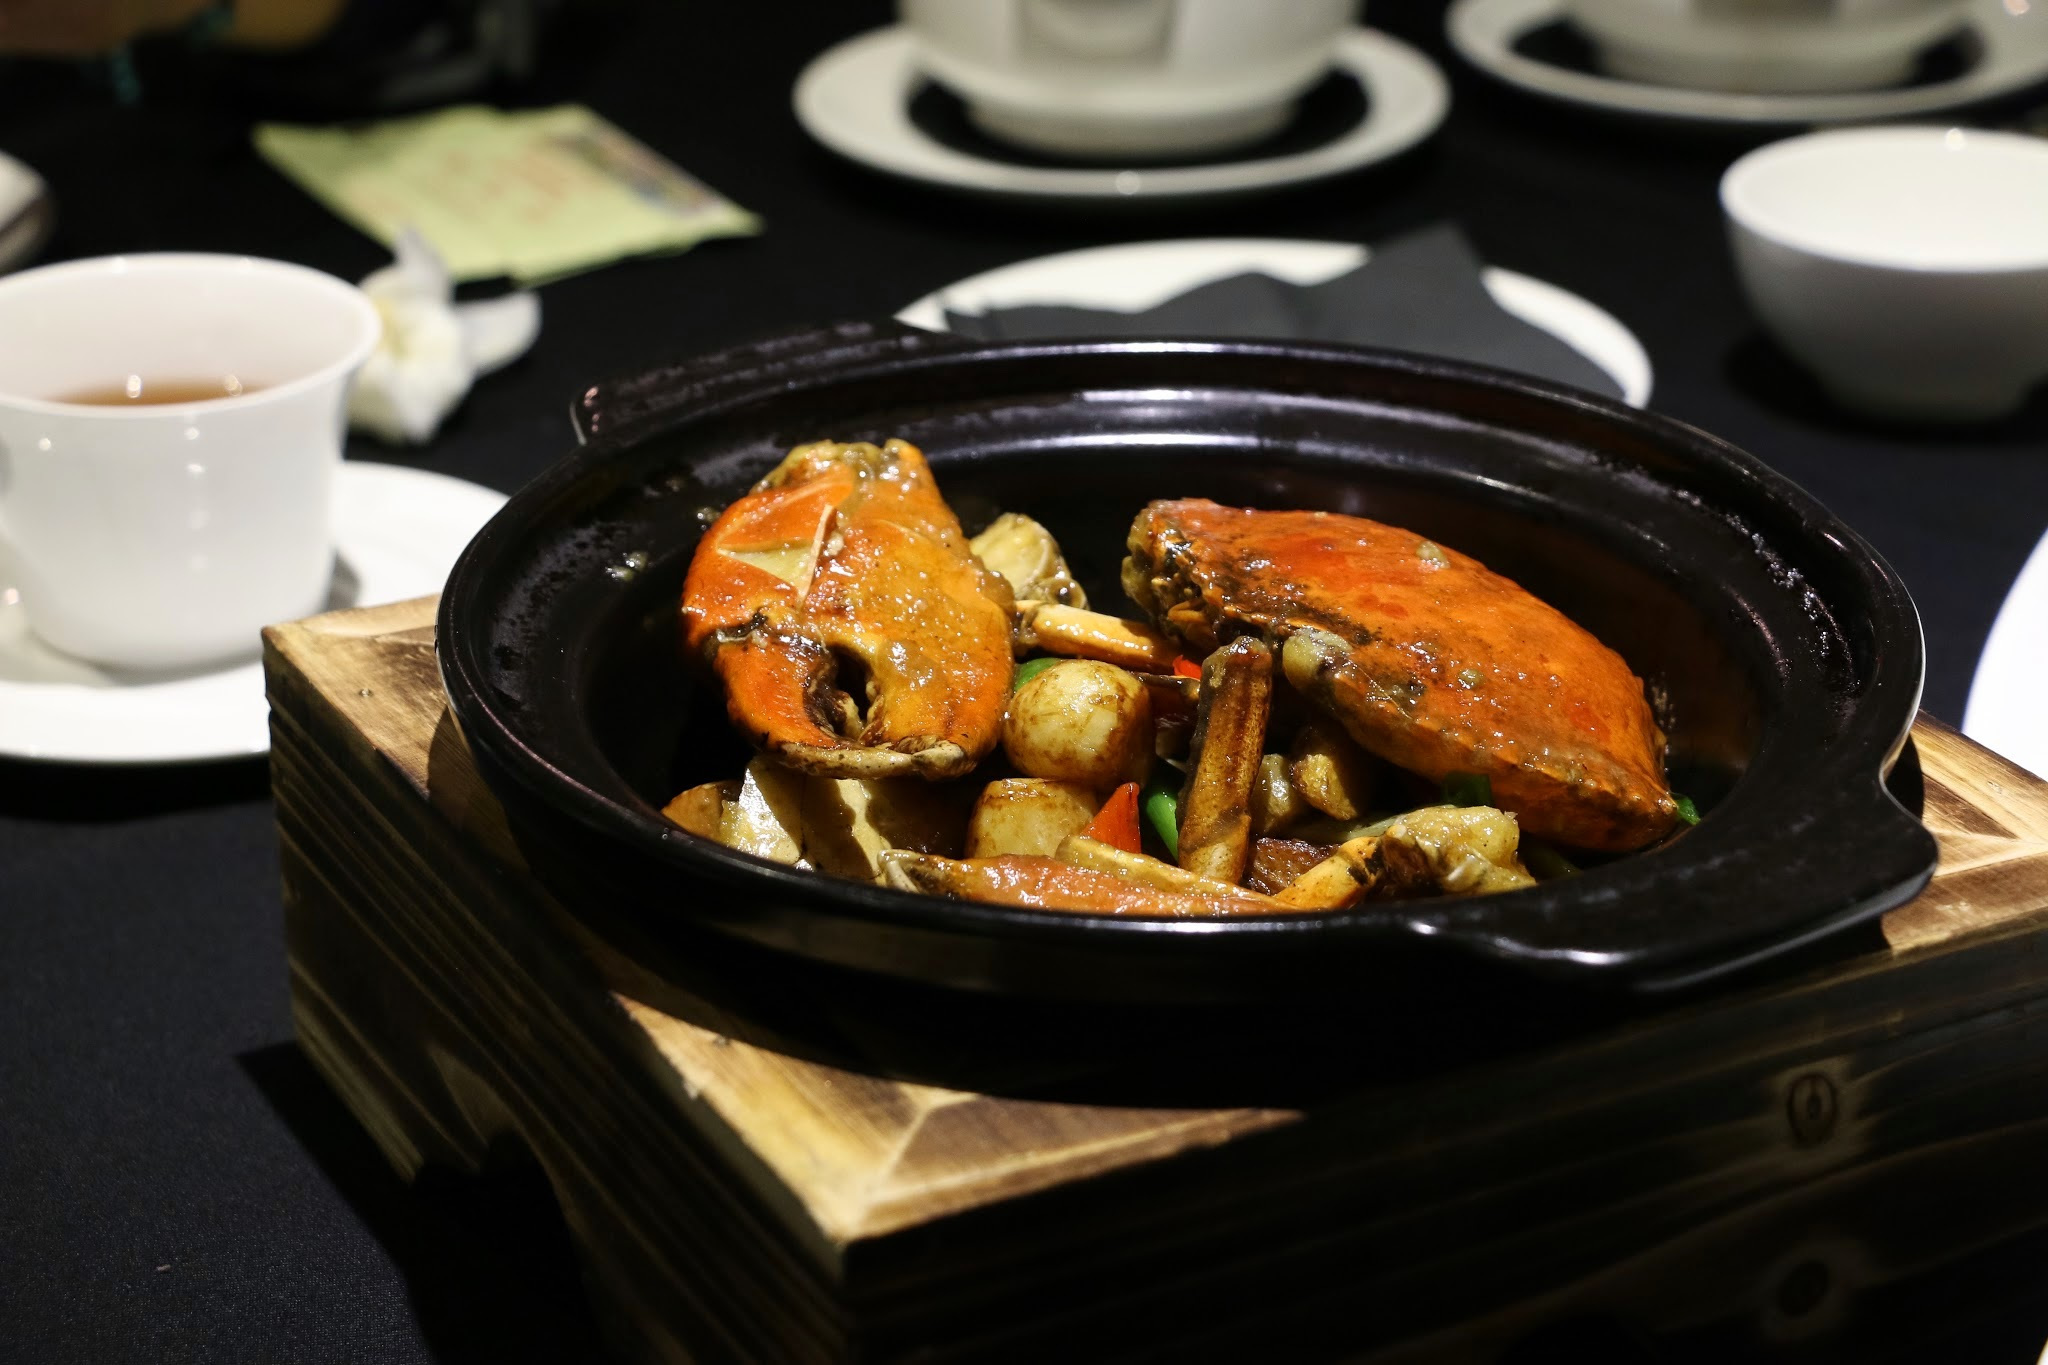 Shanghai Lo, Crab Kitchen, Baked Crab in Casserole